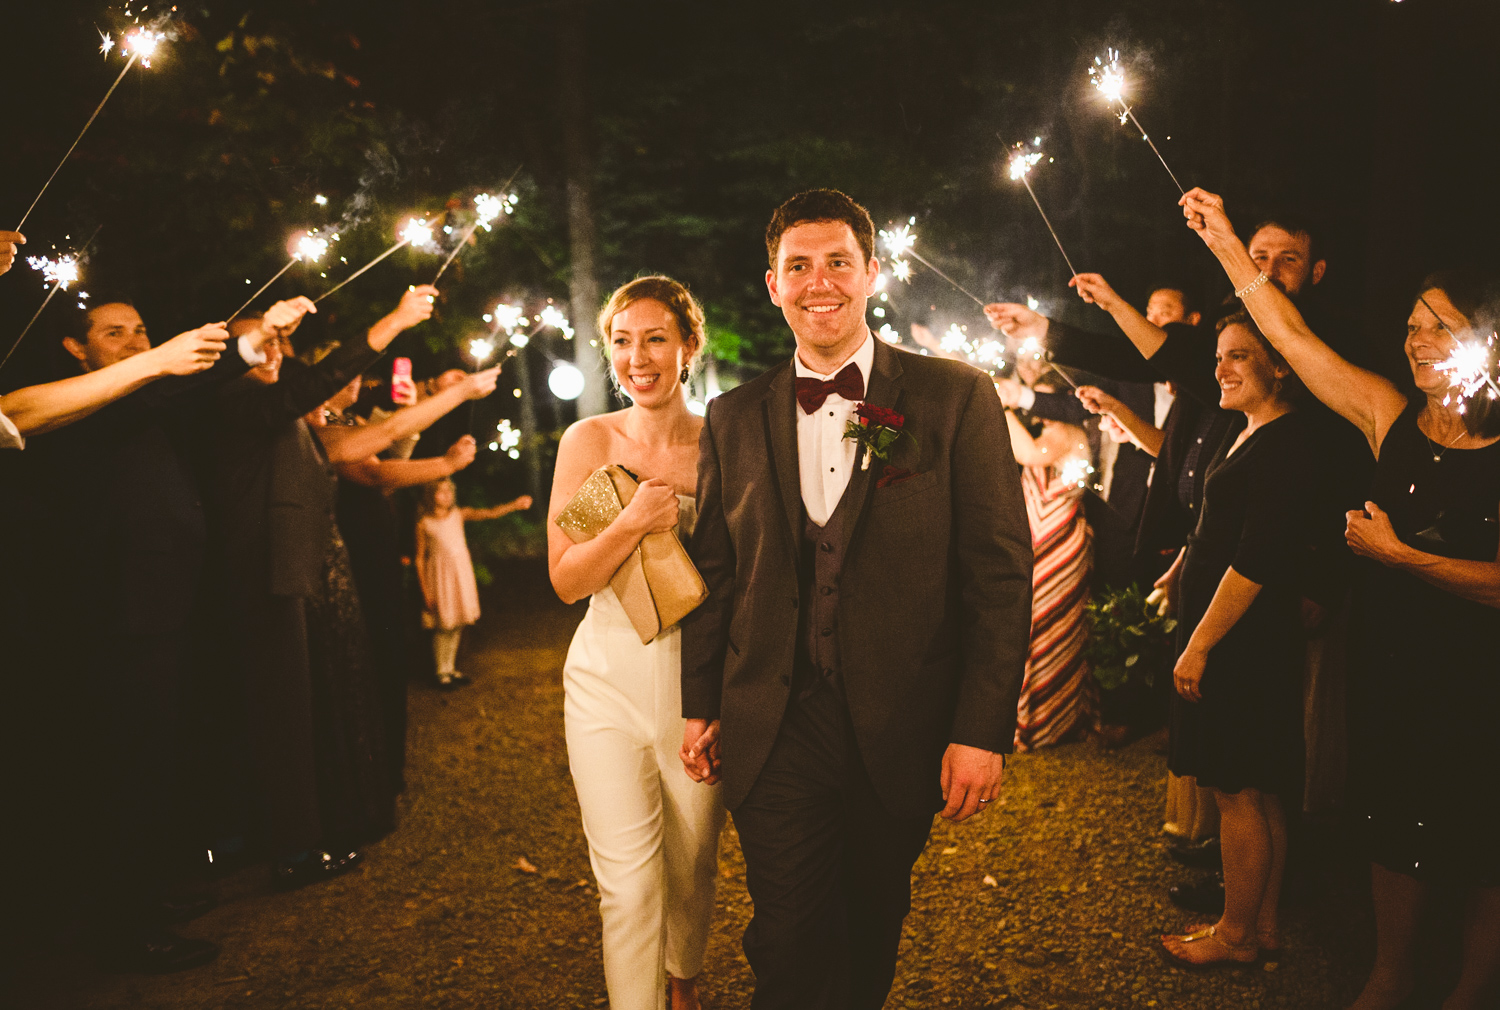 017 - sparkler exit in virginia wedding montfair resort farm nathan mitchell photography.jpg